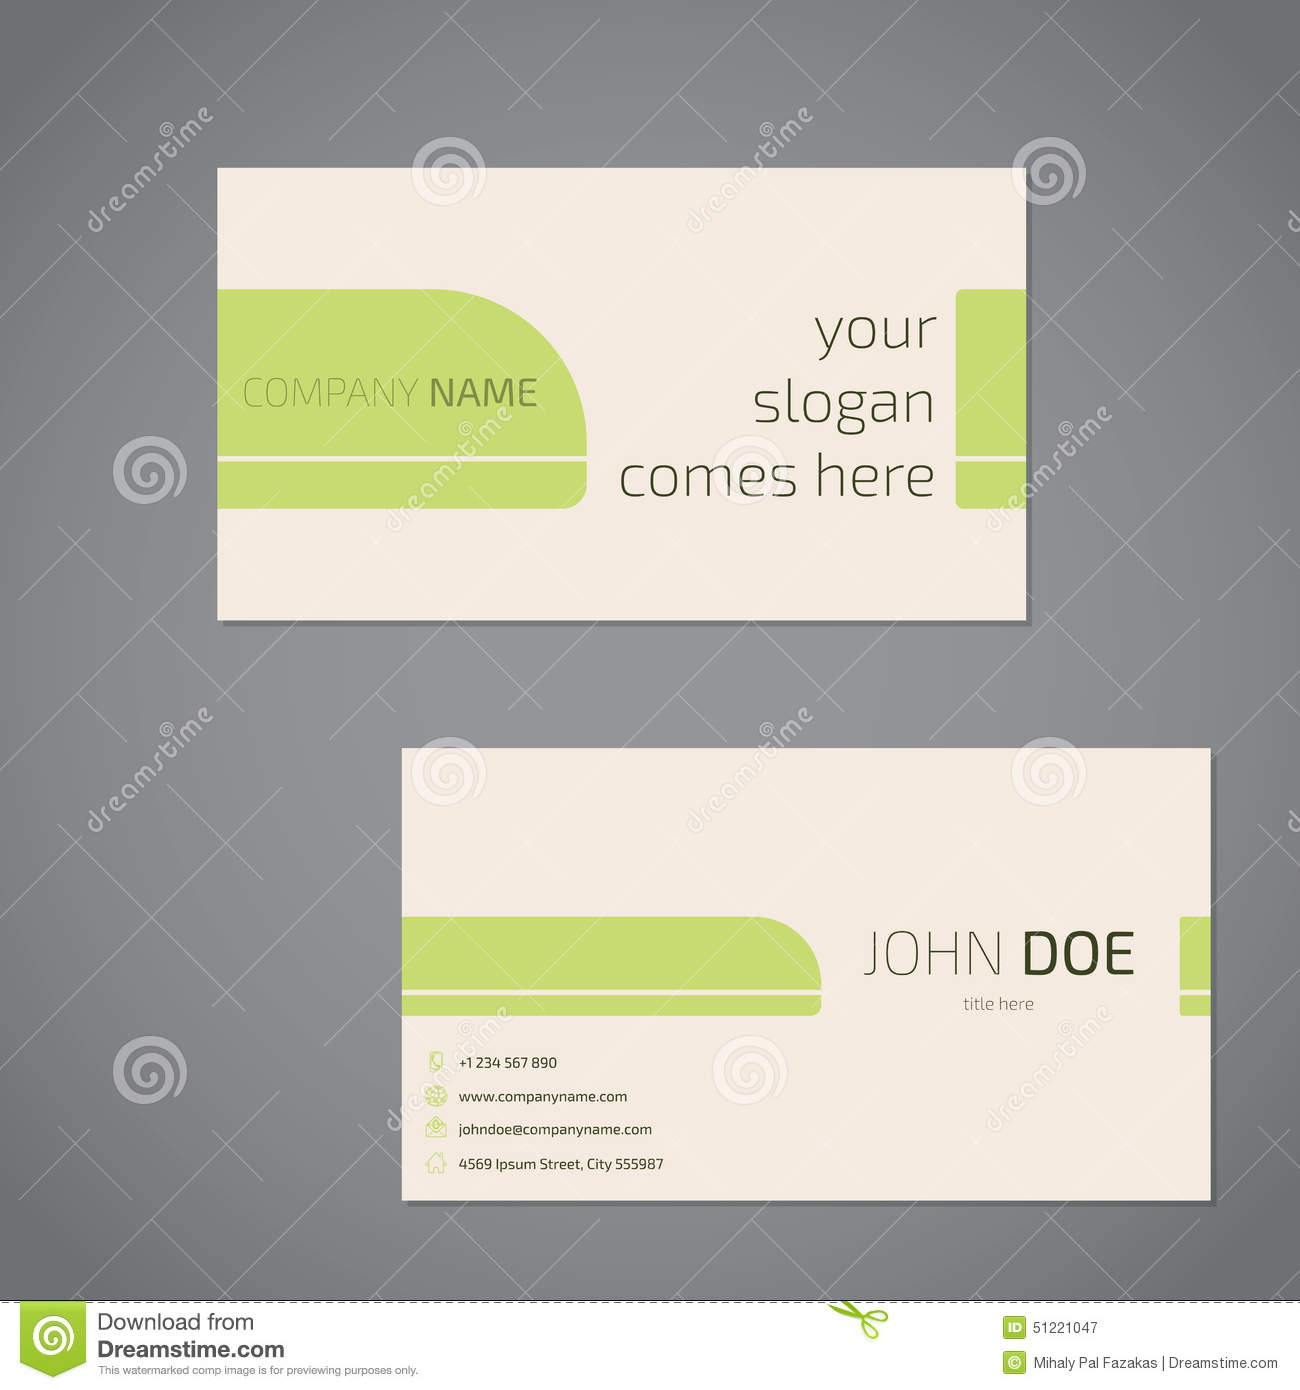 Great Business Cards Slogans Contemporary - Business Card Ideas ...